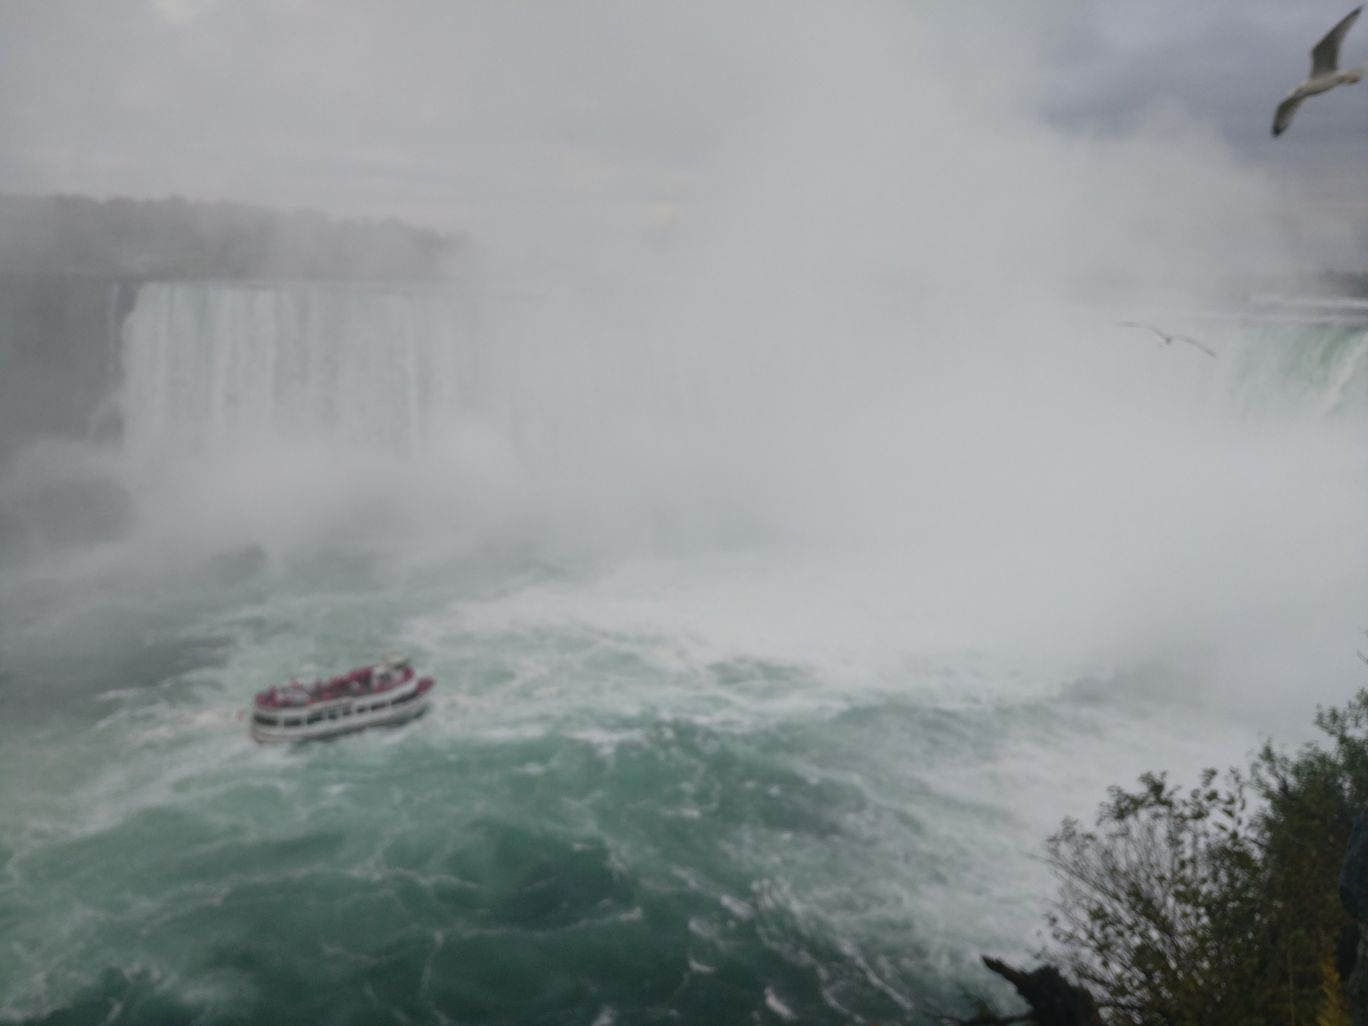 Photo of Niagara Falls By Sumit Srivastava